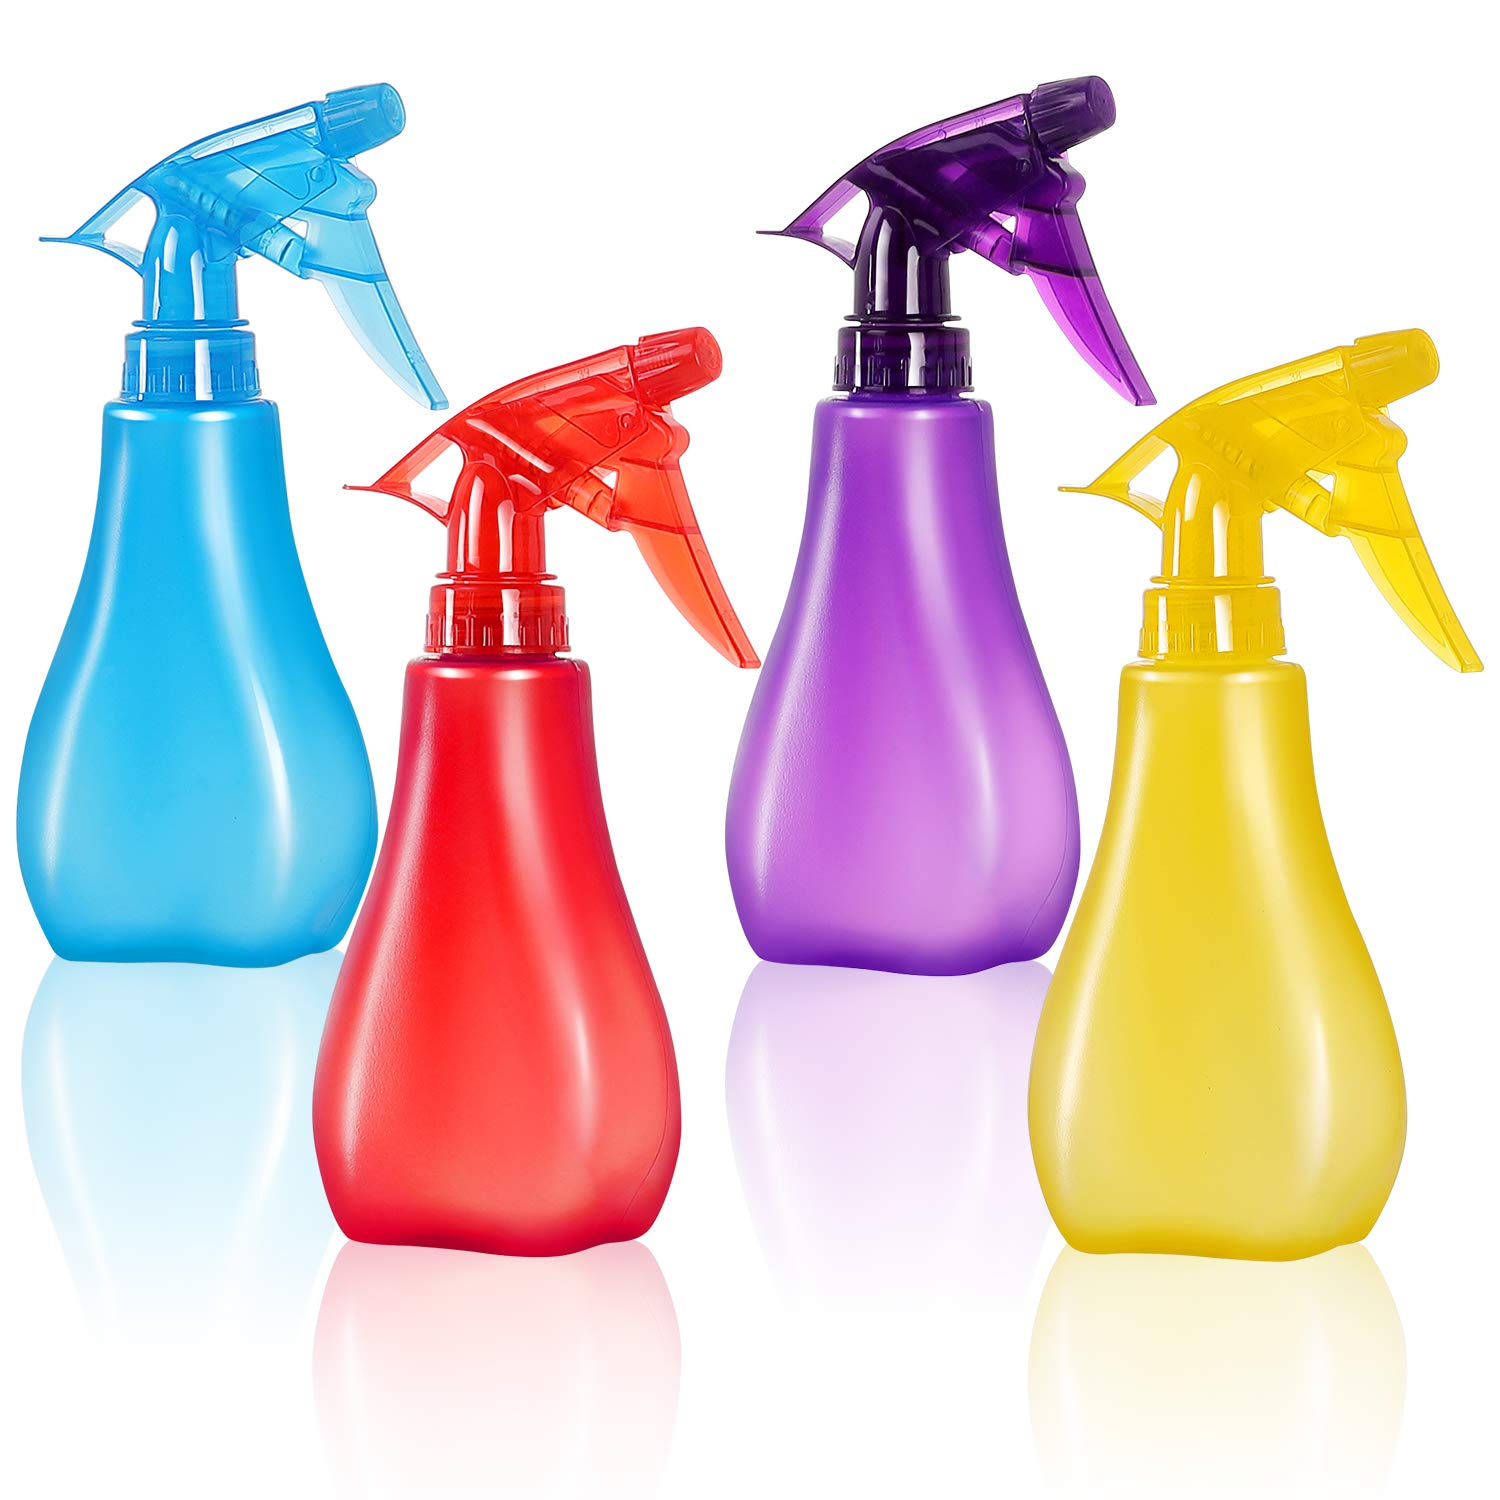 GTANG Pack of 4-8 Oz Empty Plastic Spray Bottles - Attractive Vibrant Colors - Multi Purpose Use Durable BPA Free, Empty Spray Bottle with Adjustable Nozzle for Beauty Gardening, Kitchen and Bathroom